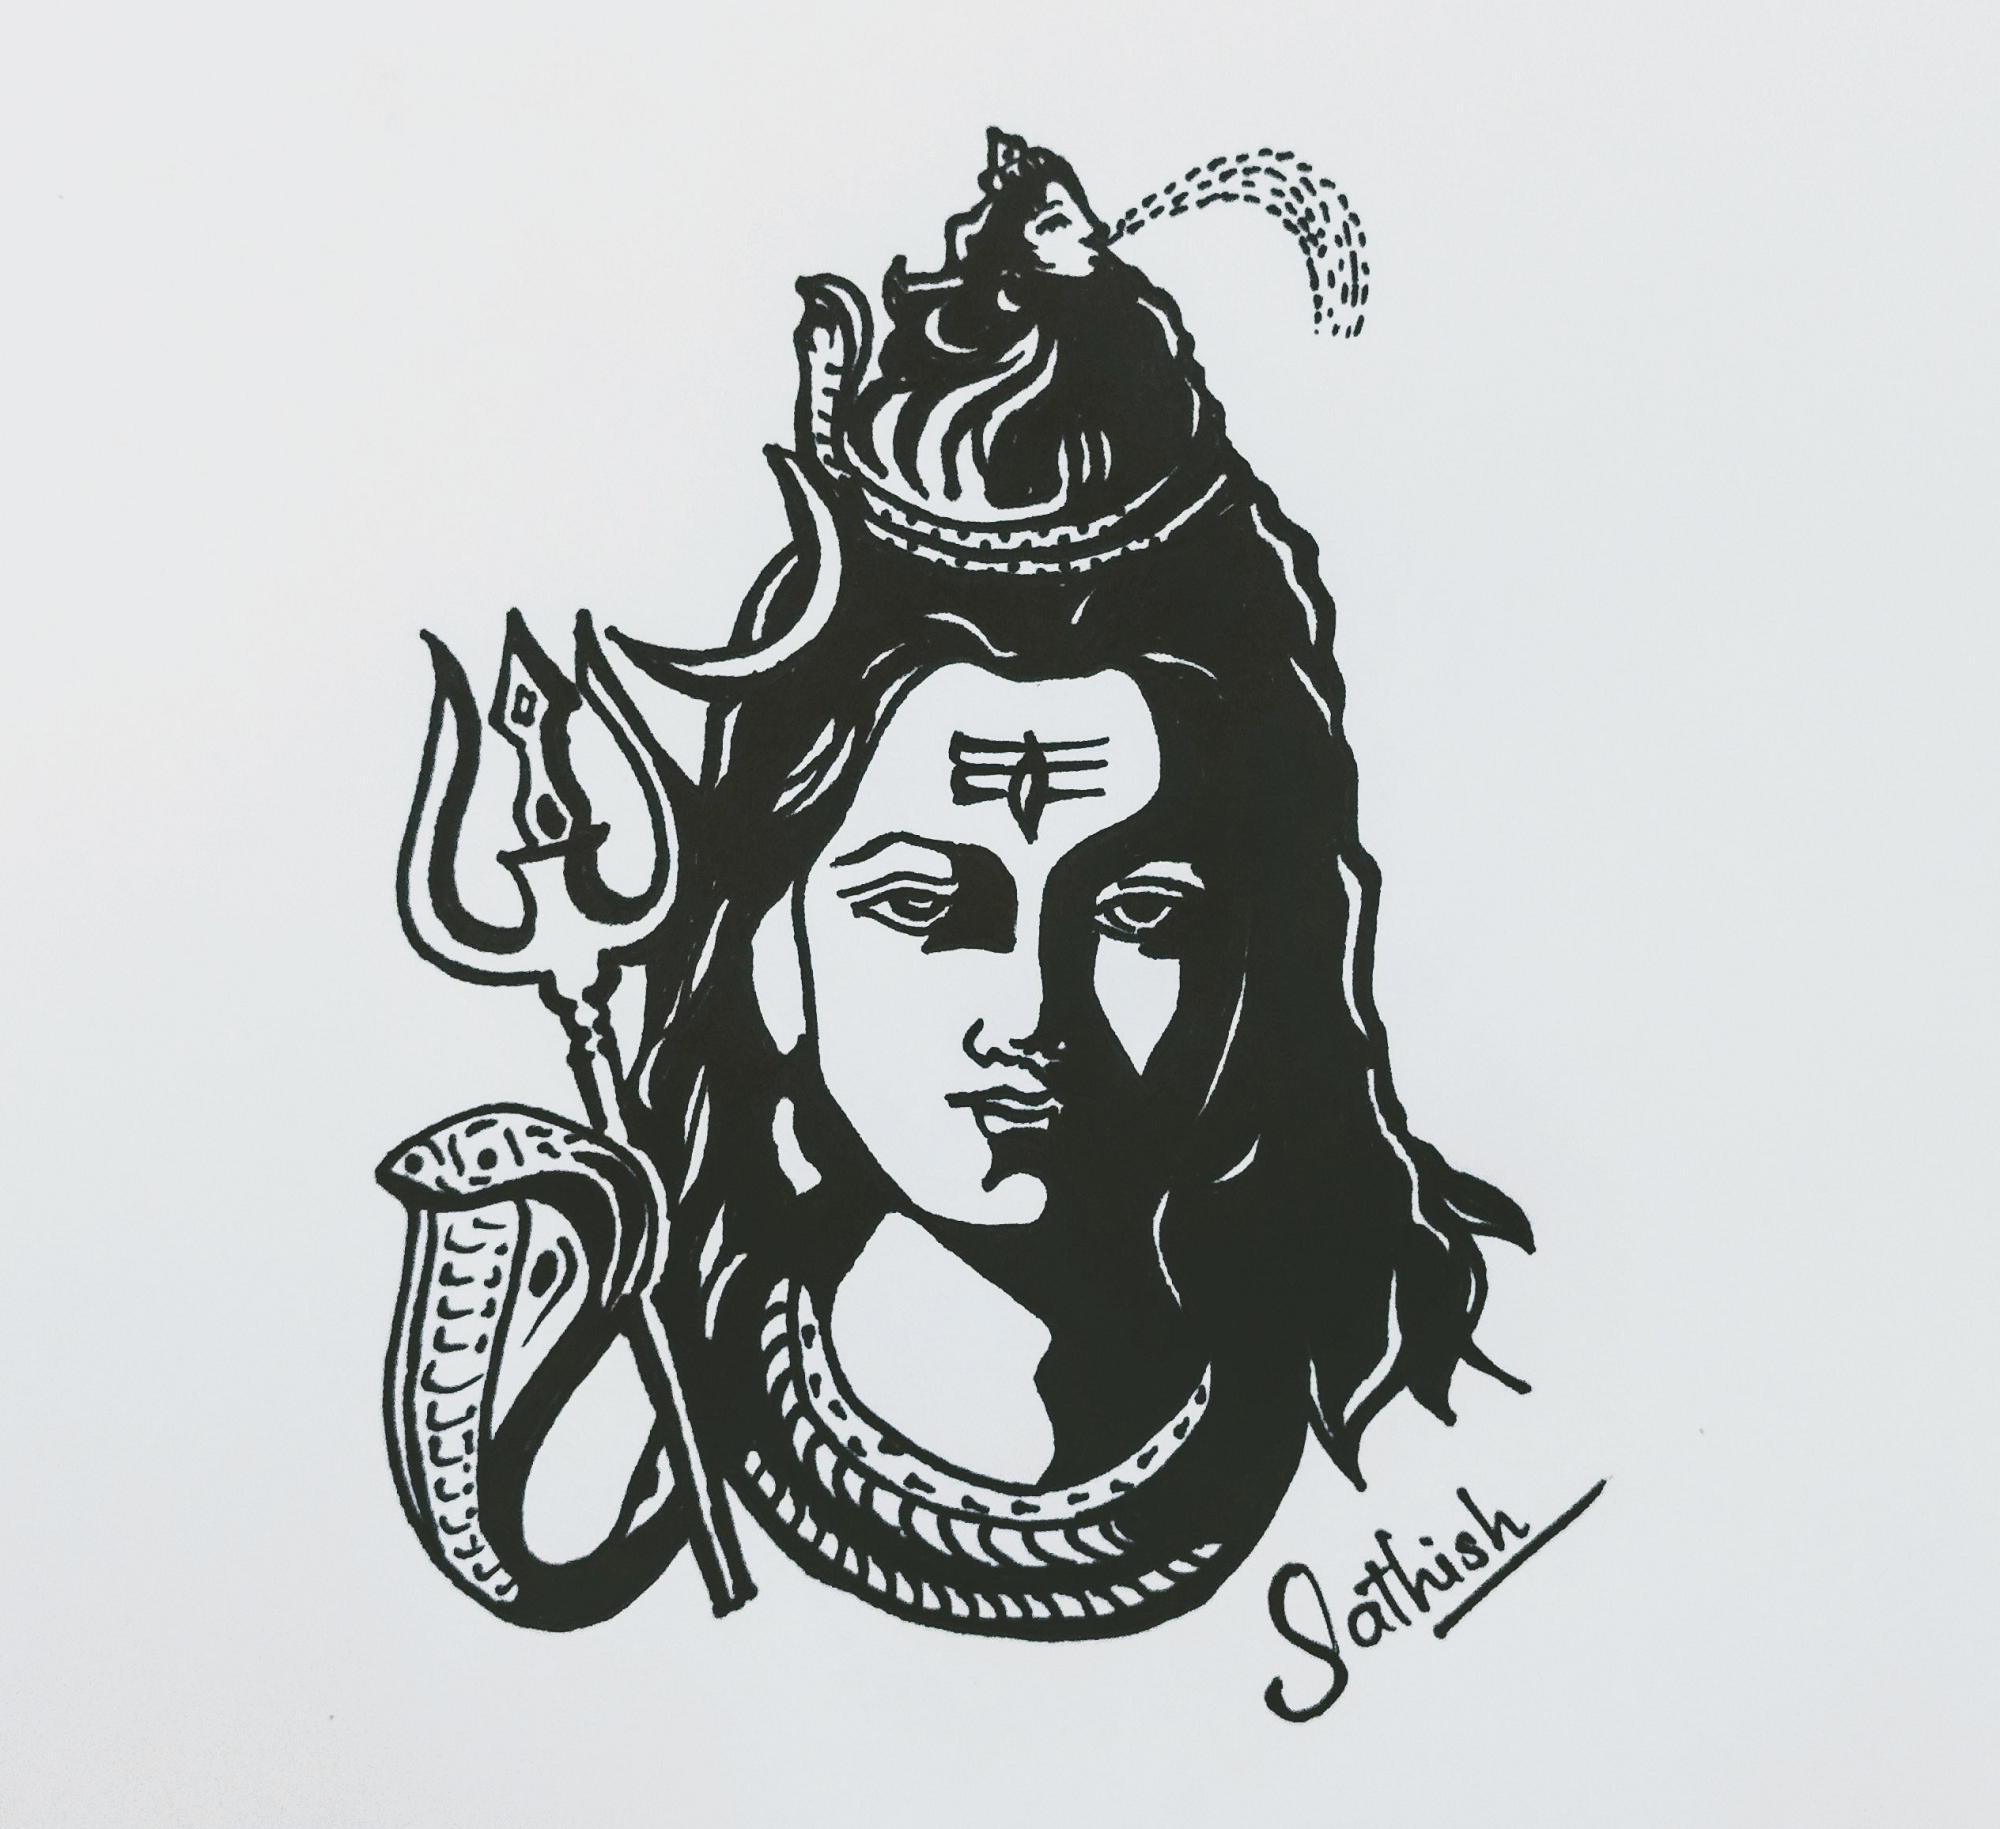 Lord shiva sketch happy maha shivaratri pen sketch art sketches pen art